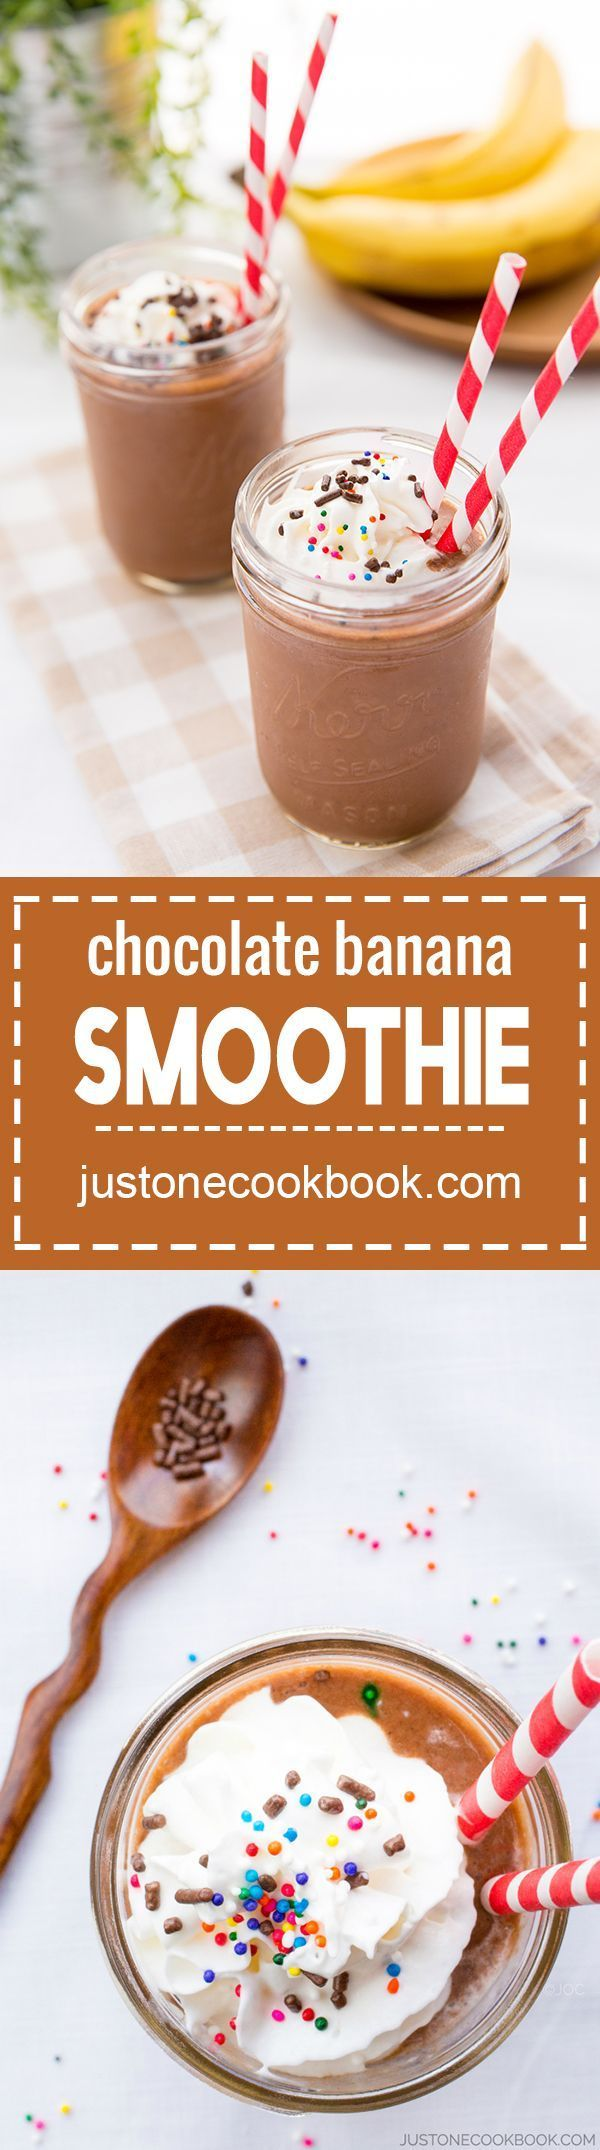 Chocolate Banana Smoothie  - Top Recipes on Pinterest - #Banana #Chocolate #pinterest #recipes #Smoothie #Top #chocolatebananasmoothie Chocolate Banana Smoothie  - Top Recipes on Pinterest - #Banana #Chocolate #pinterest #recipes #Smoothie #Top #chocolatebananasmoothie